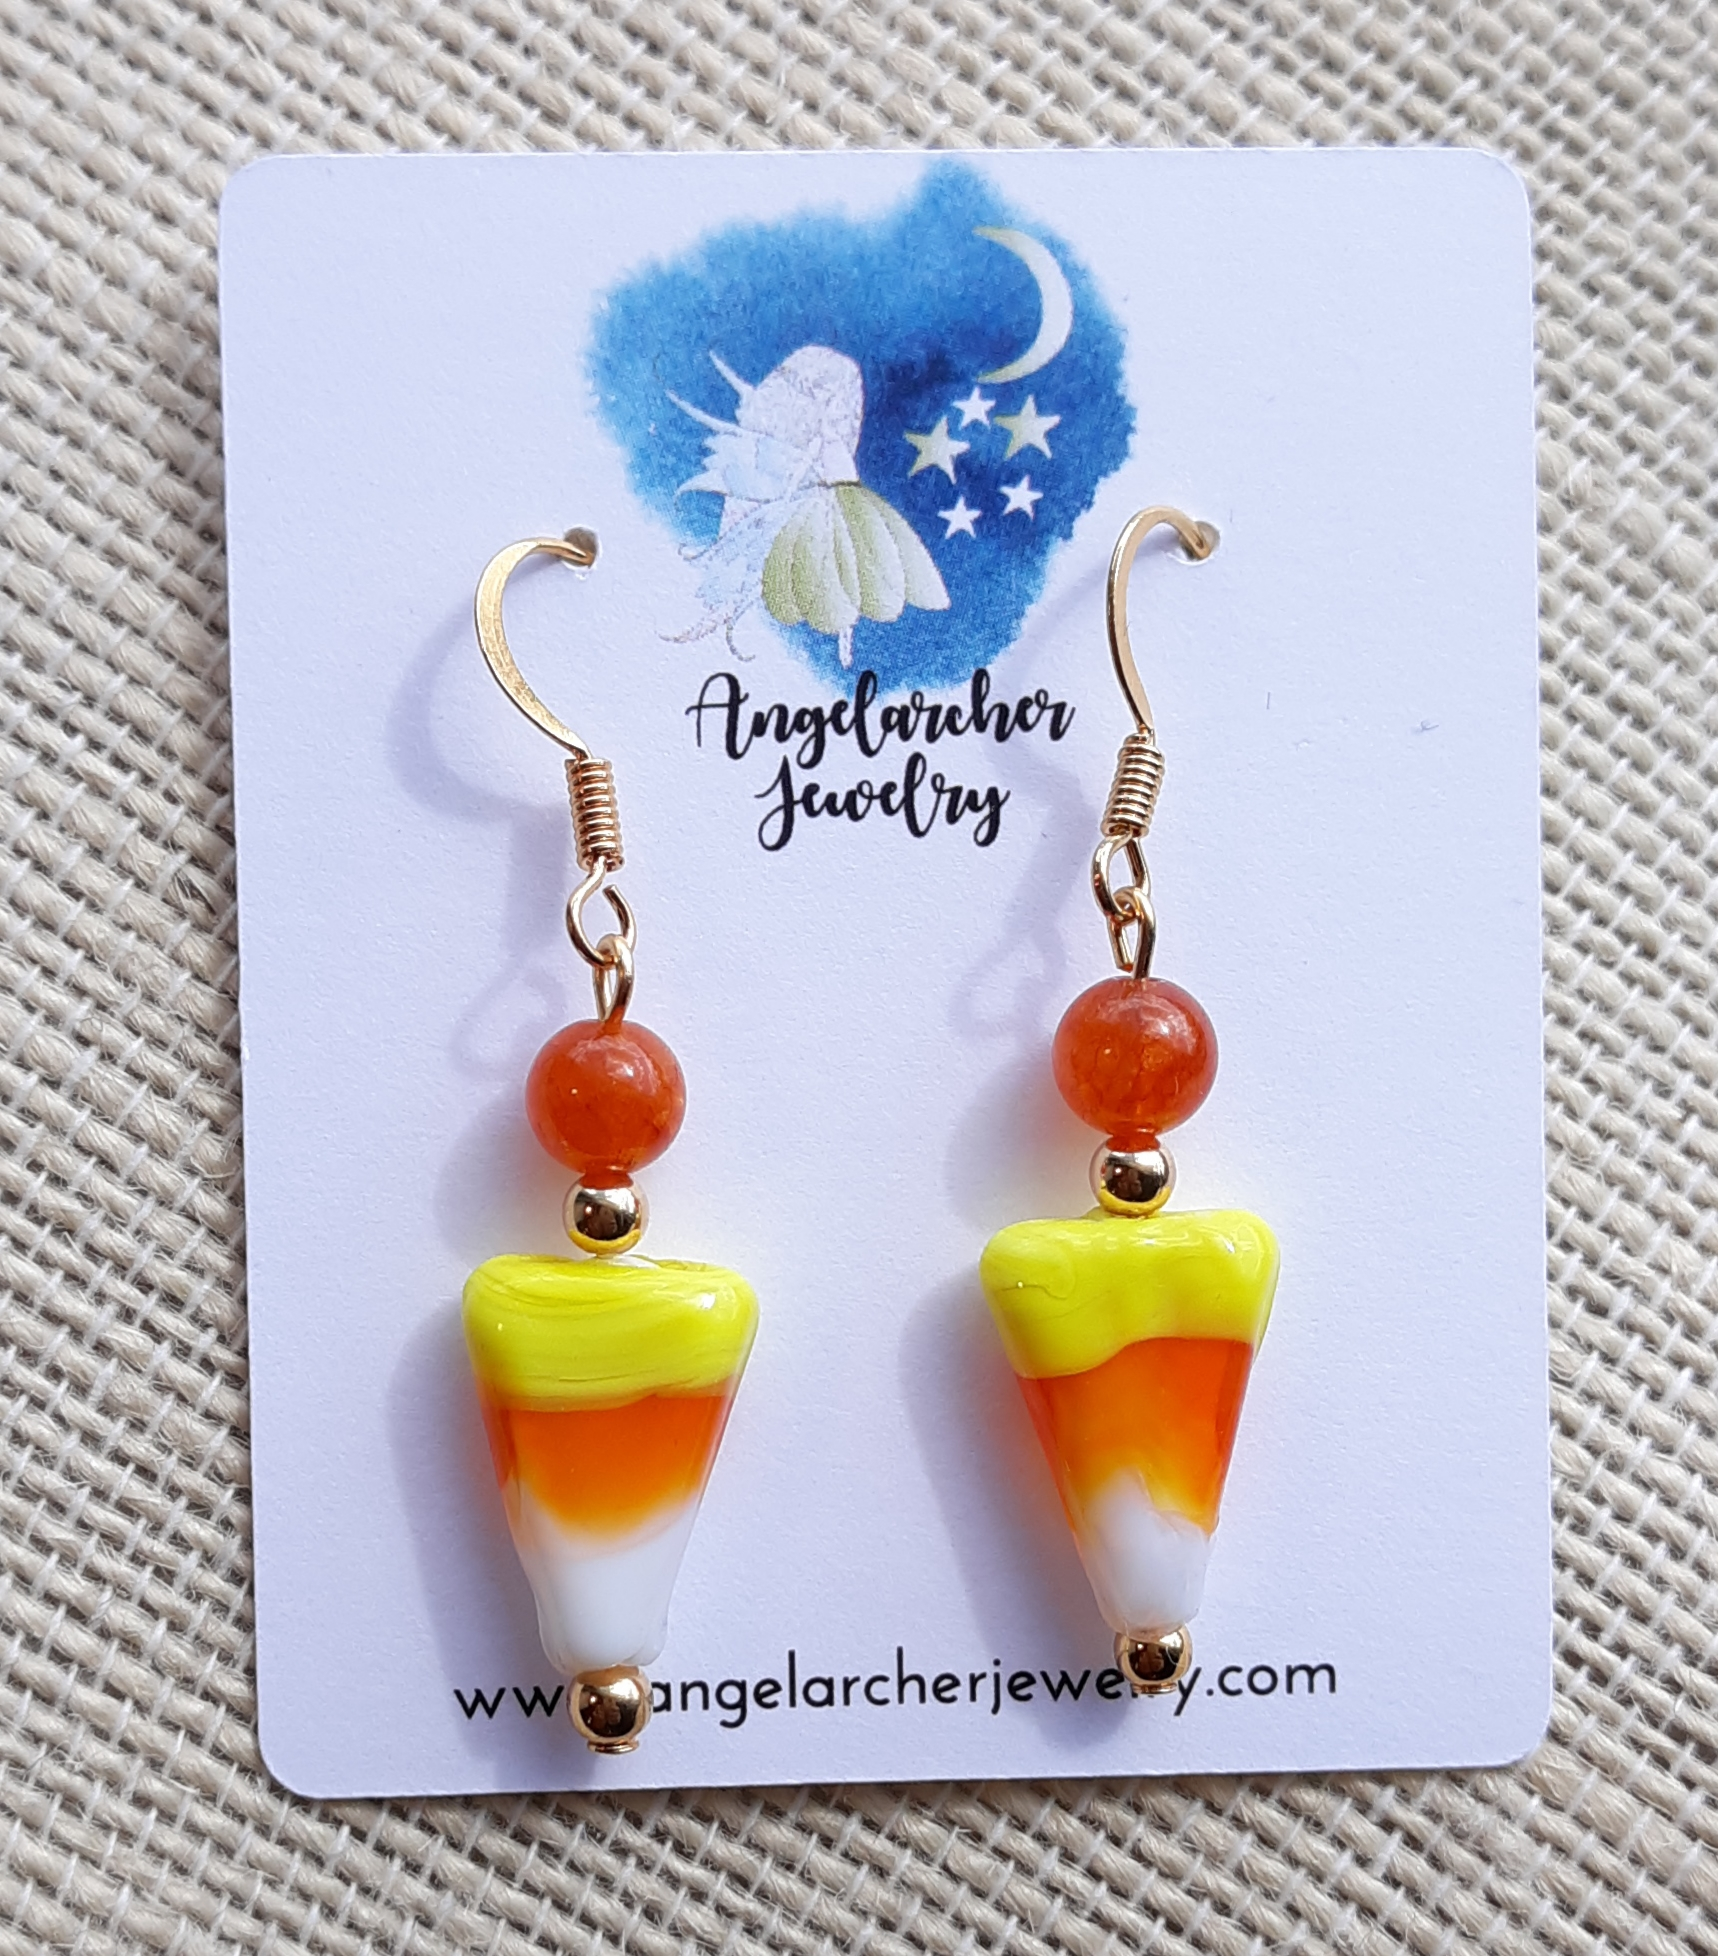 814 - candy corn eargs org gp